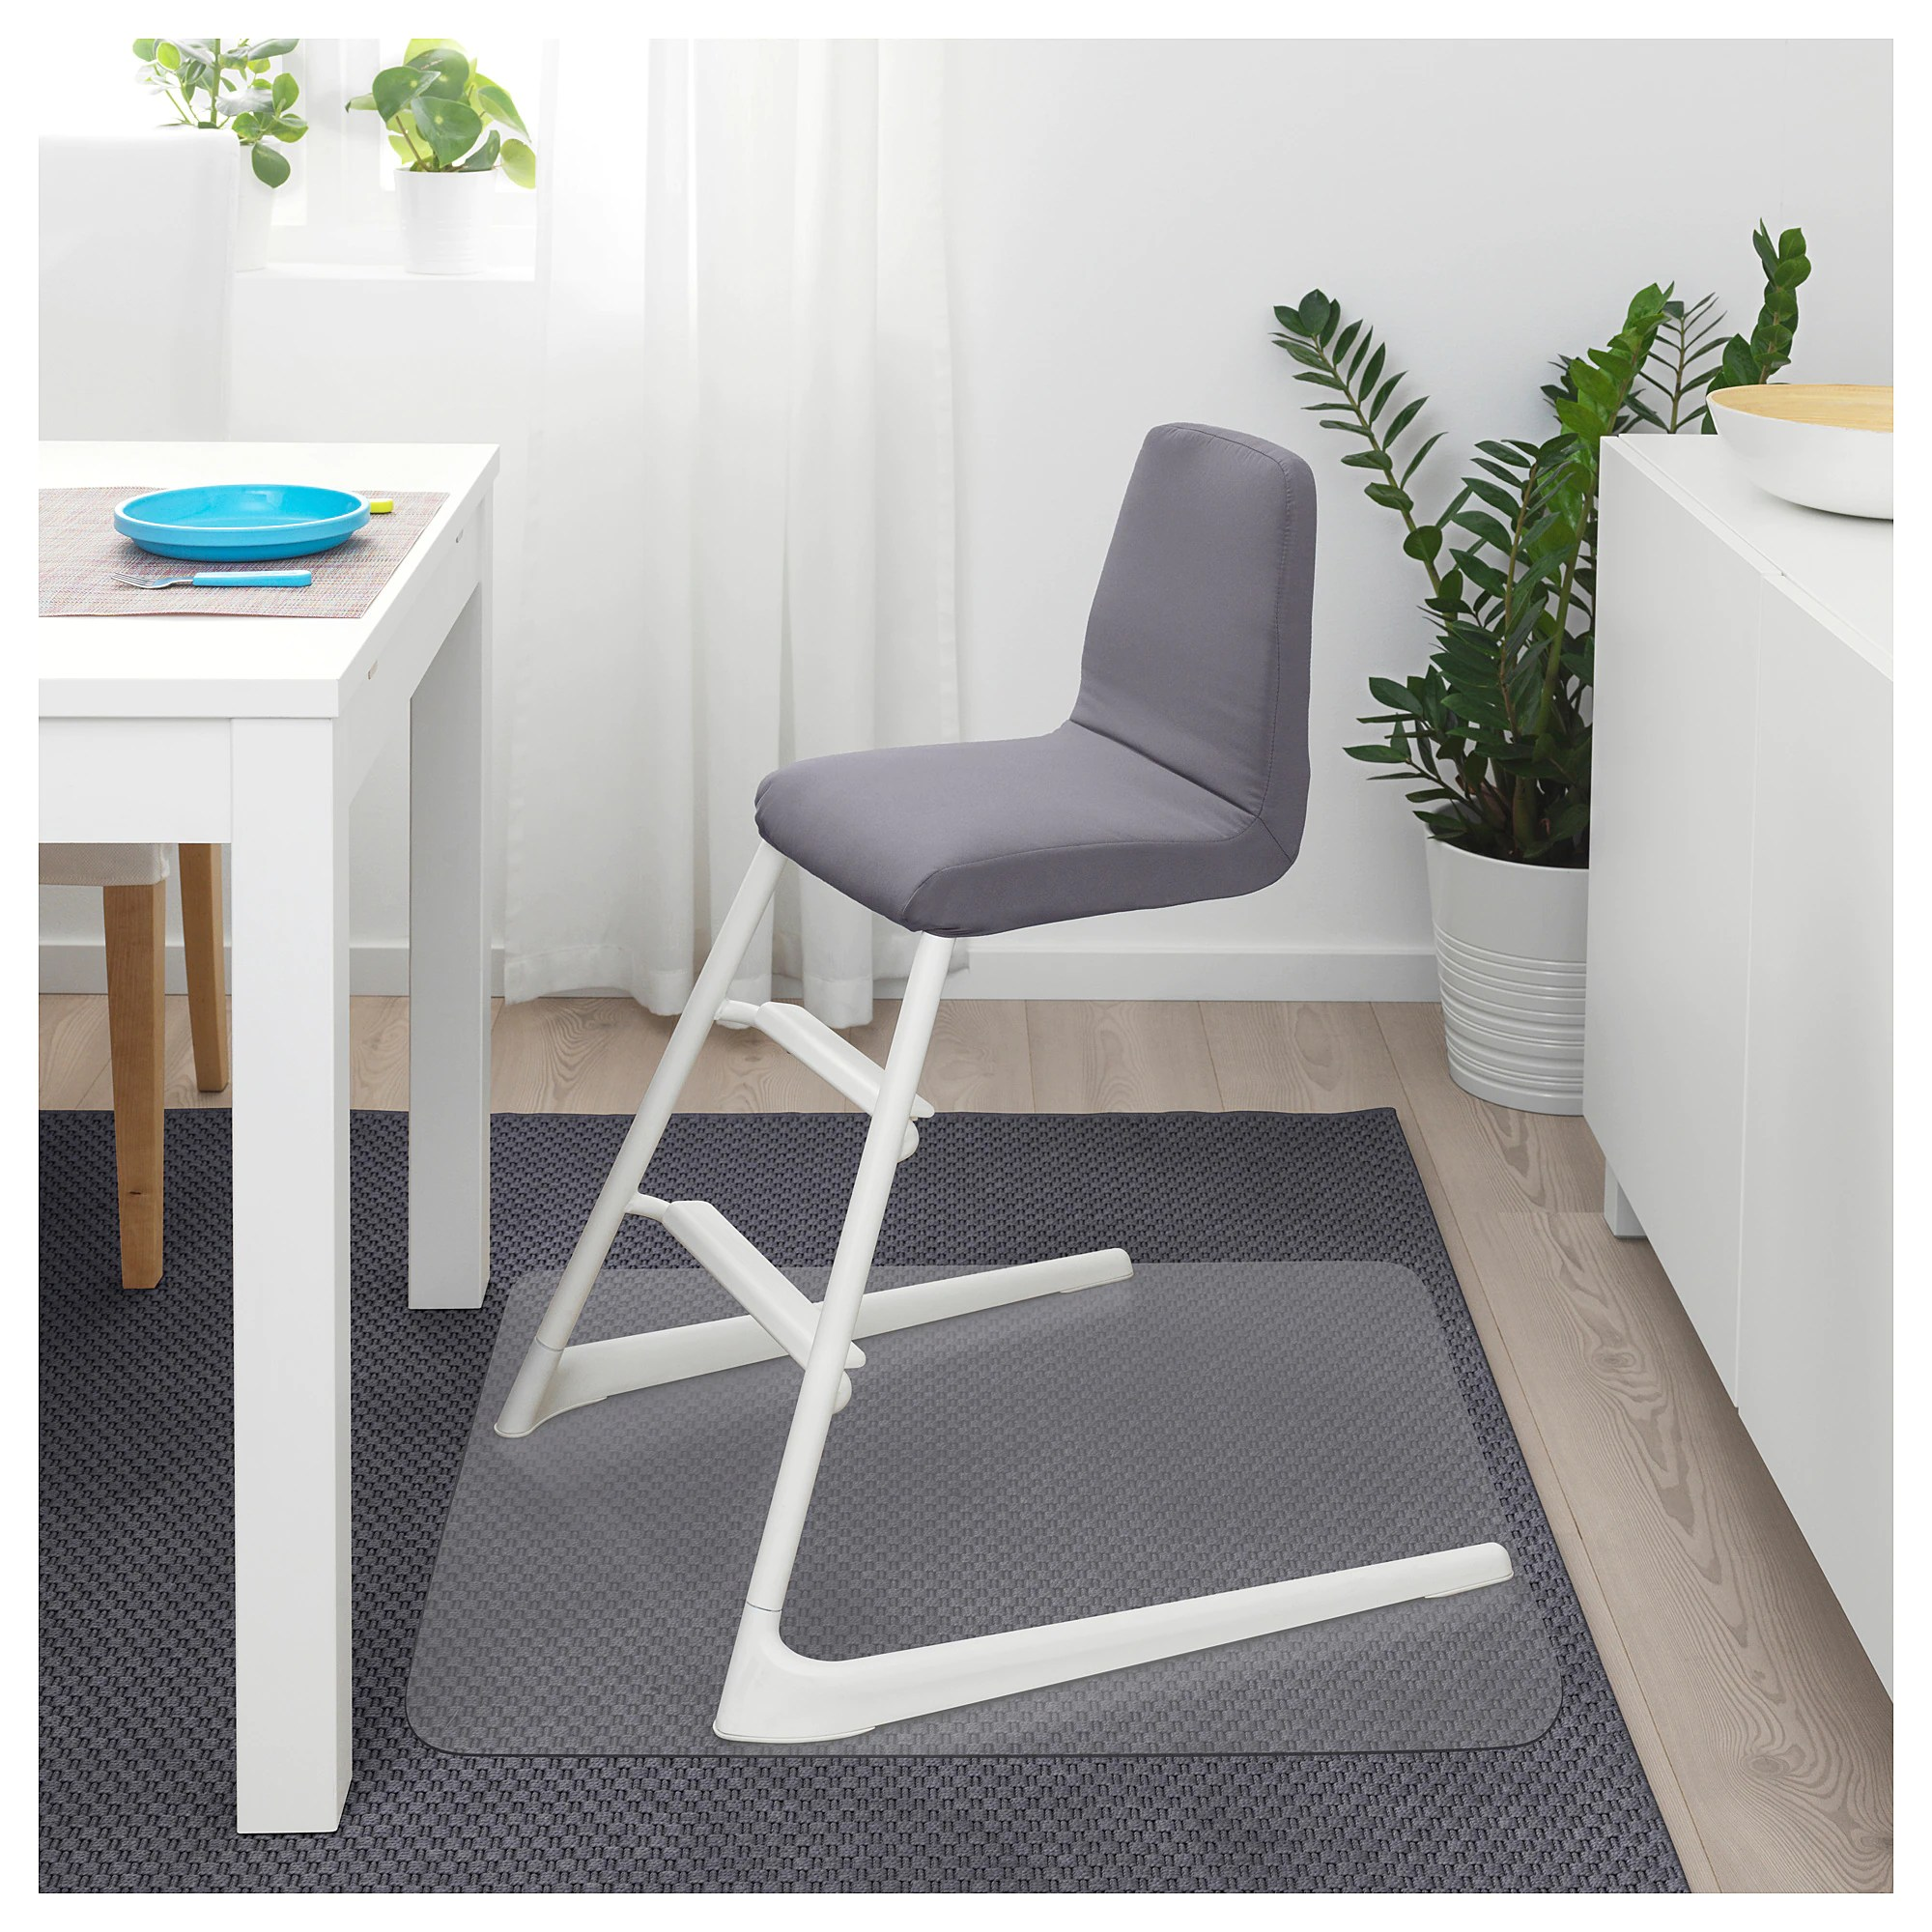 Sedia Junior Ikea Langur Padded Seat Cover For Junior Chair Grey